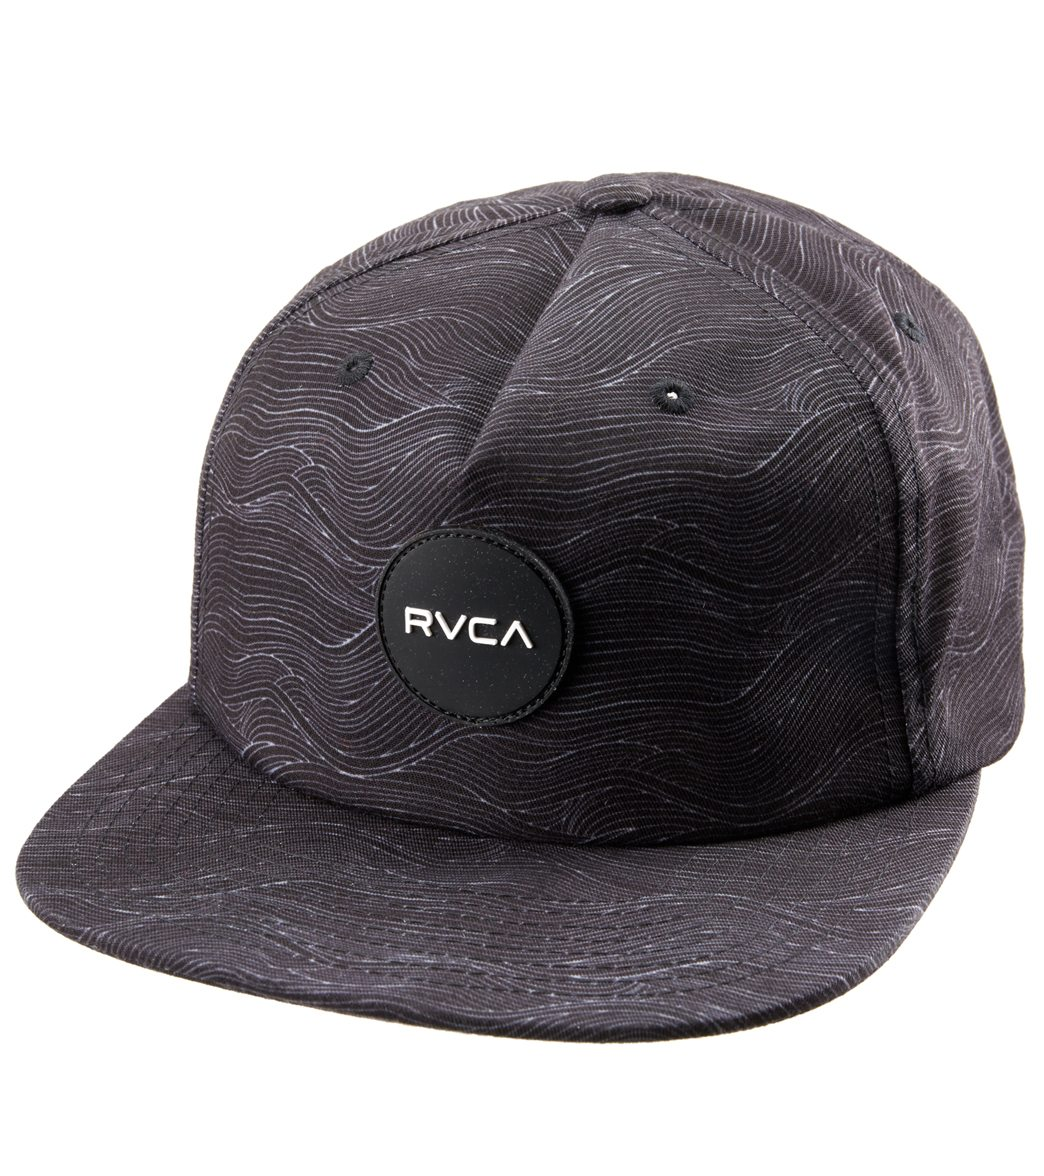 85e4fa5f RVCA Men's Hi Tide Snapback Hat at SwimOutlet.com